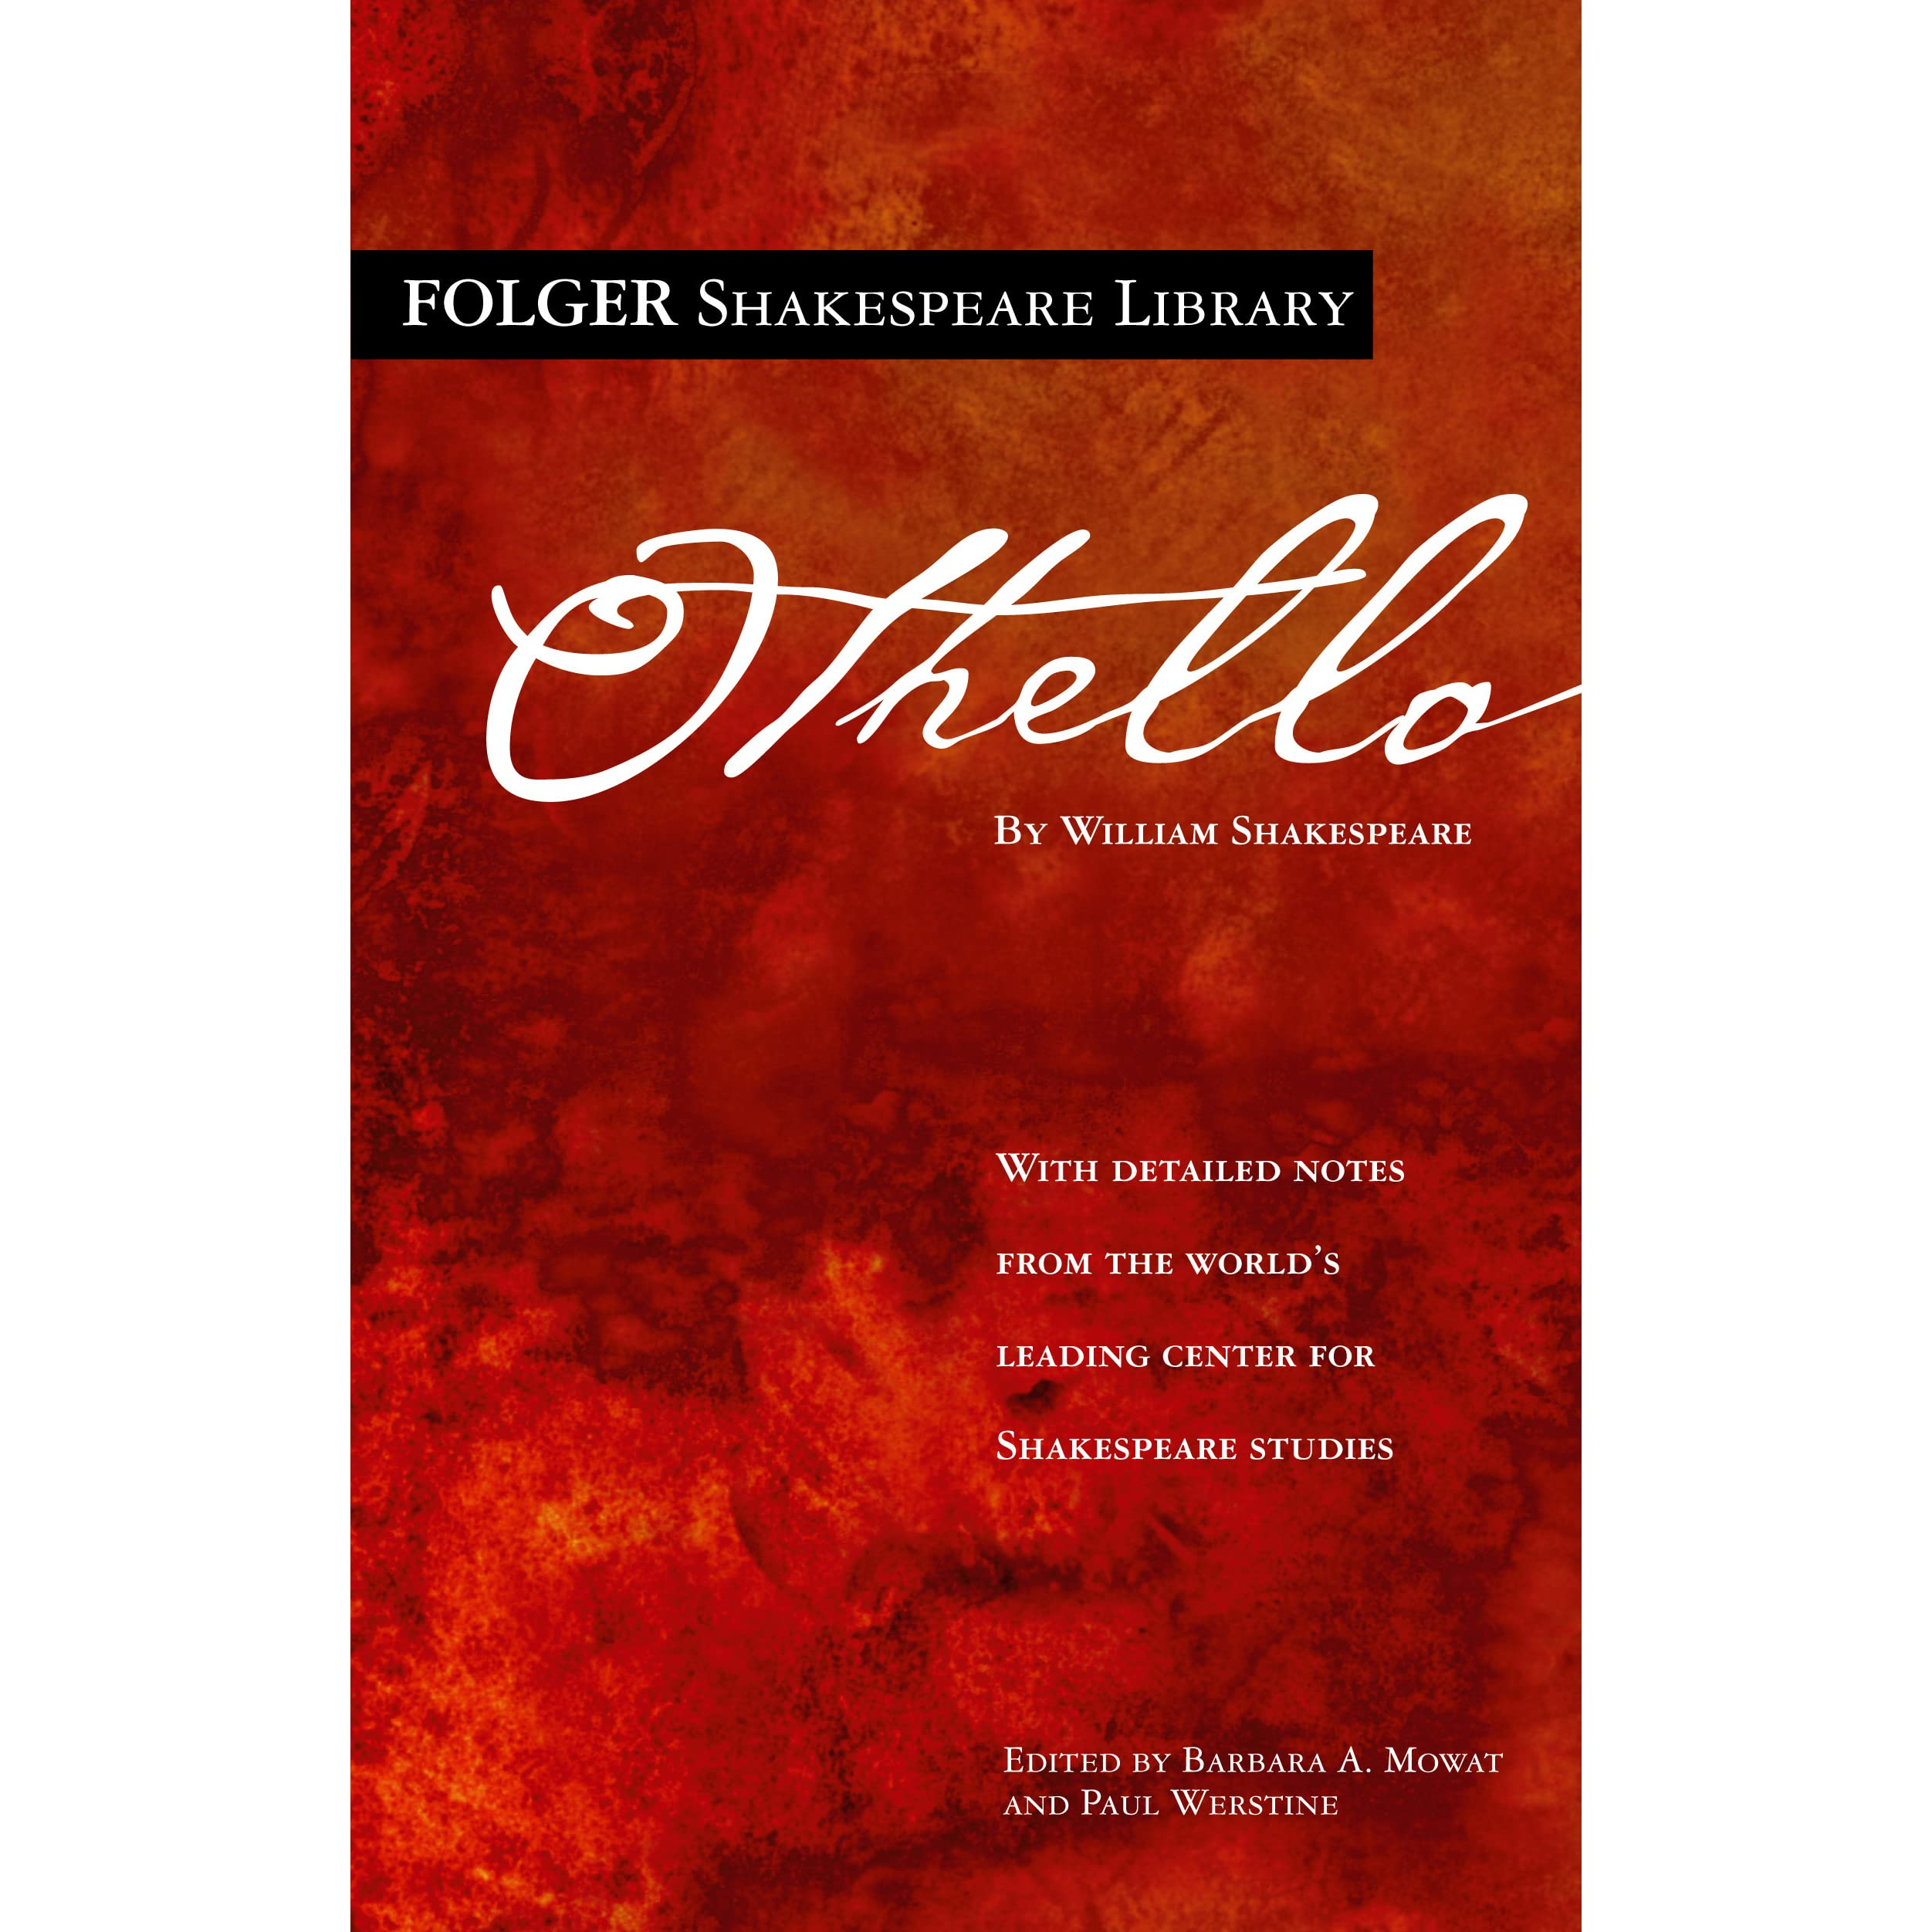 important othello quotes for essays for scholarships